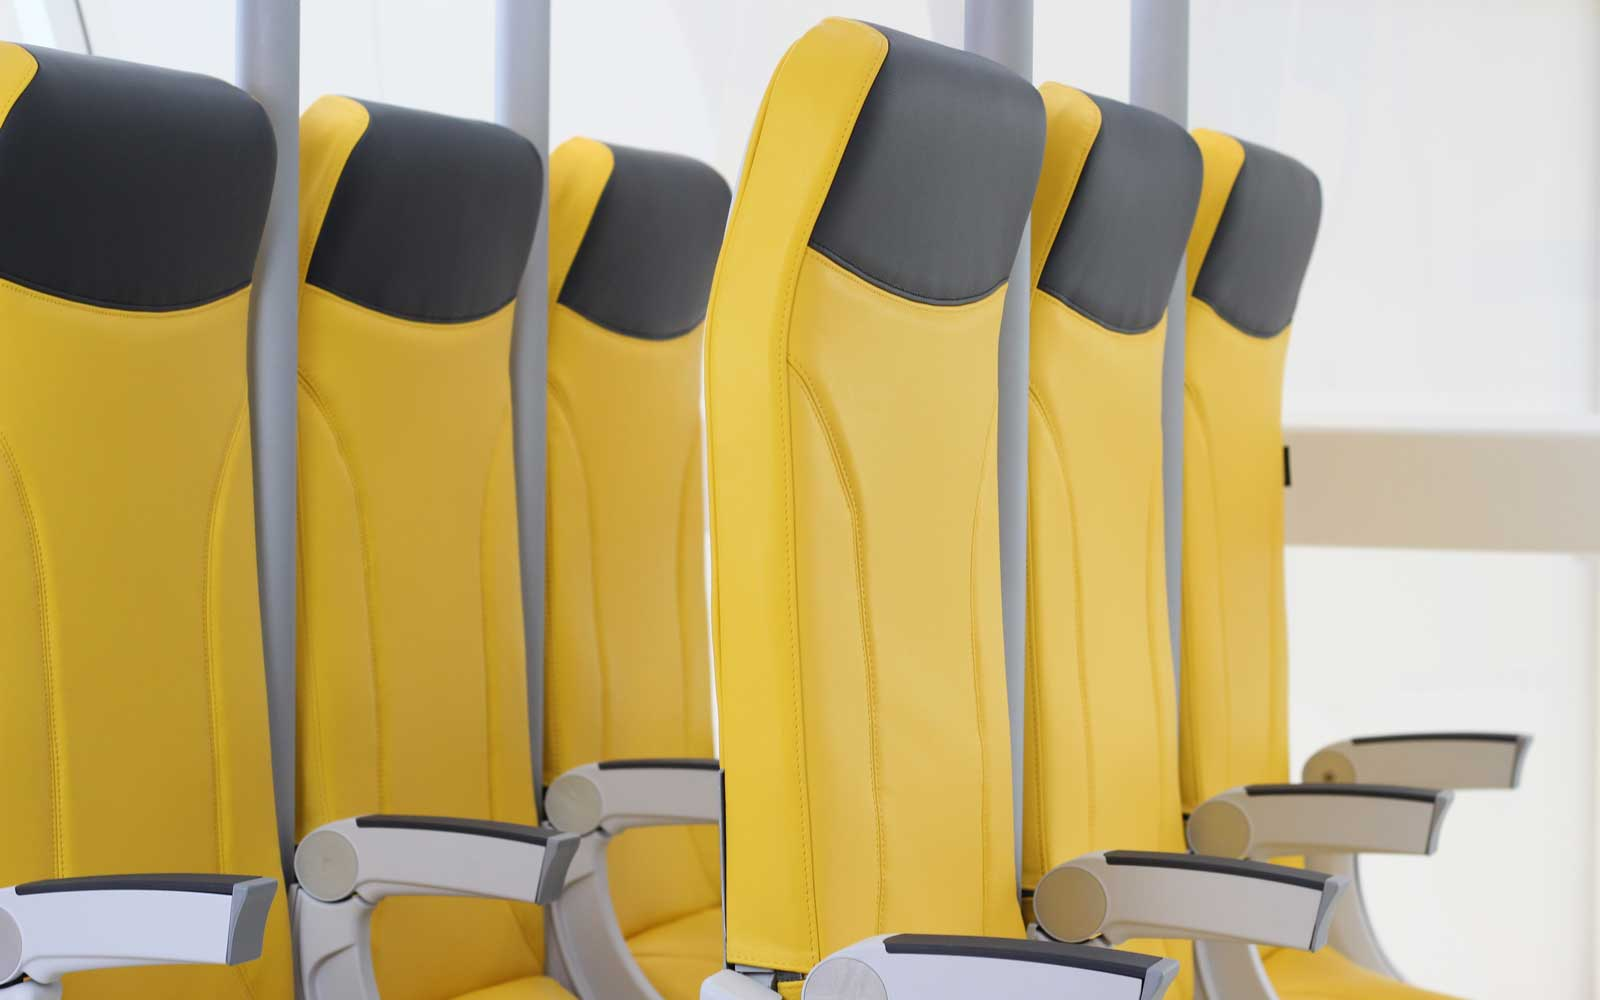 These Stand-up Airplane Seats Look Like a Roller Coaster Ride